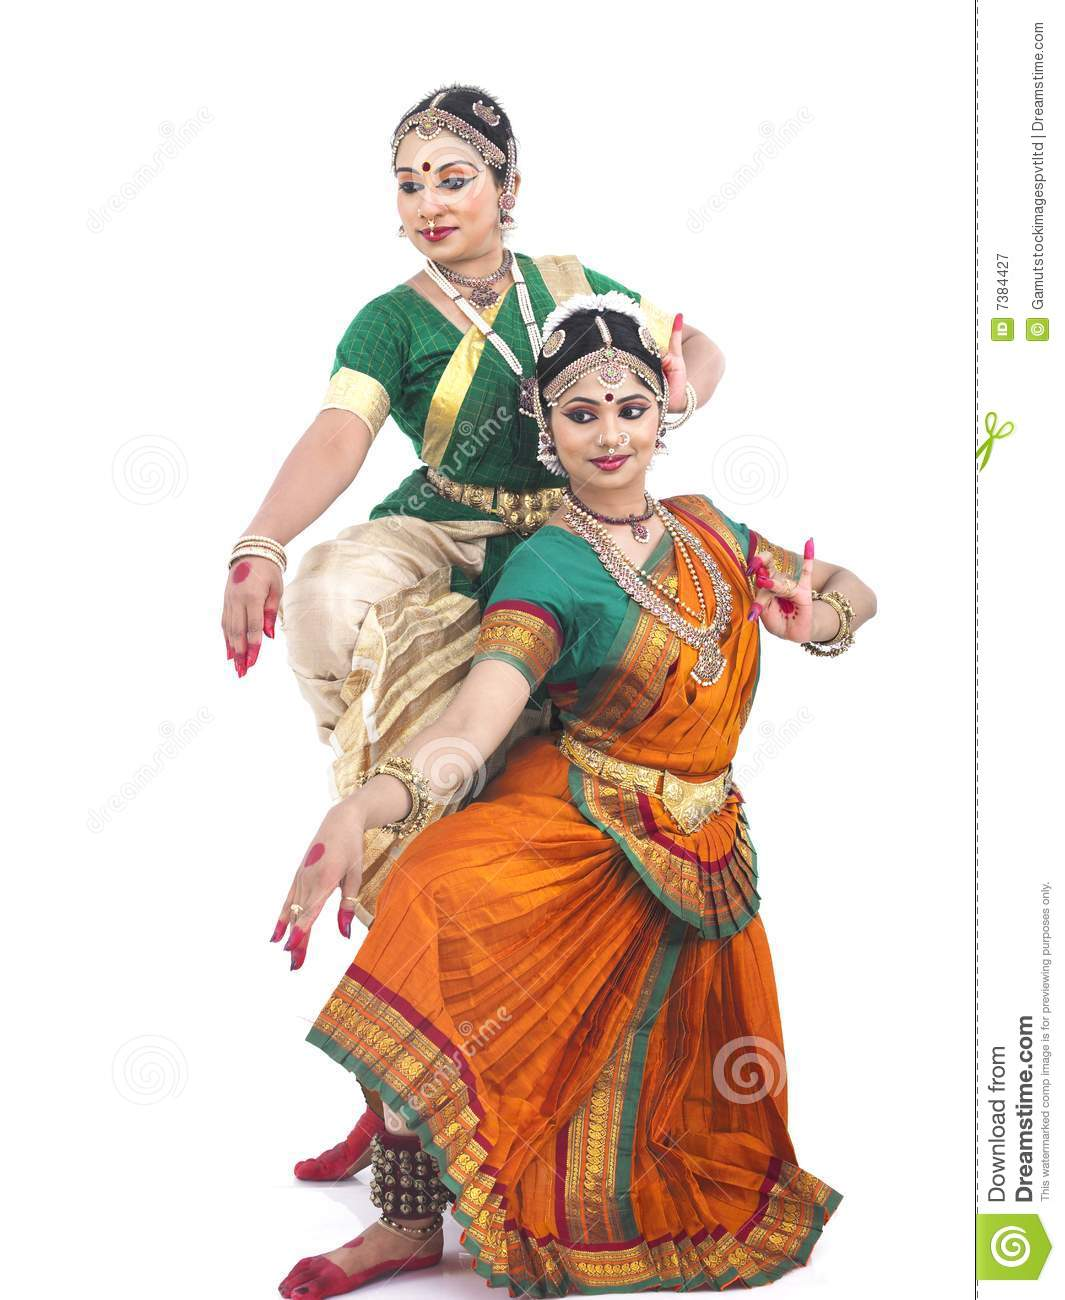 South indian dance clipart.